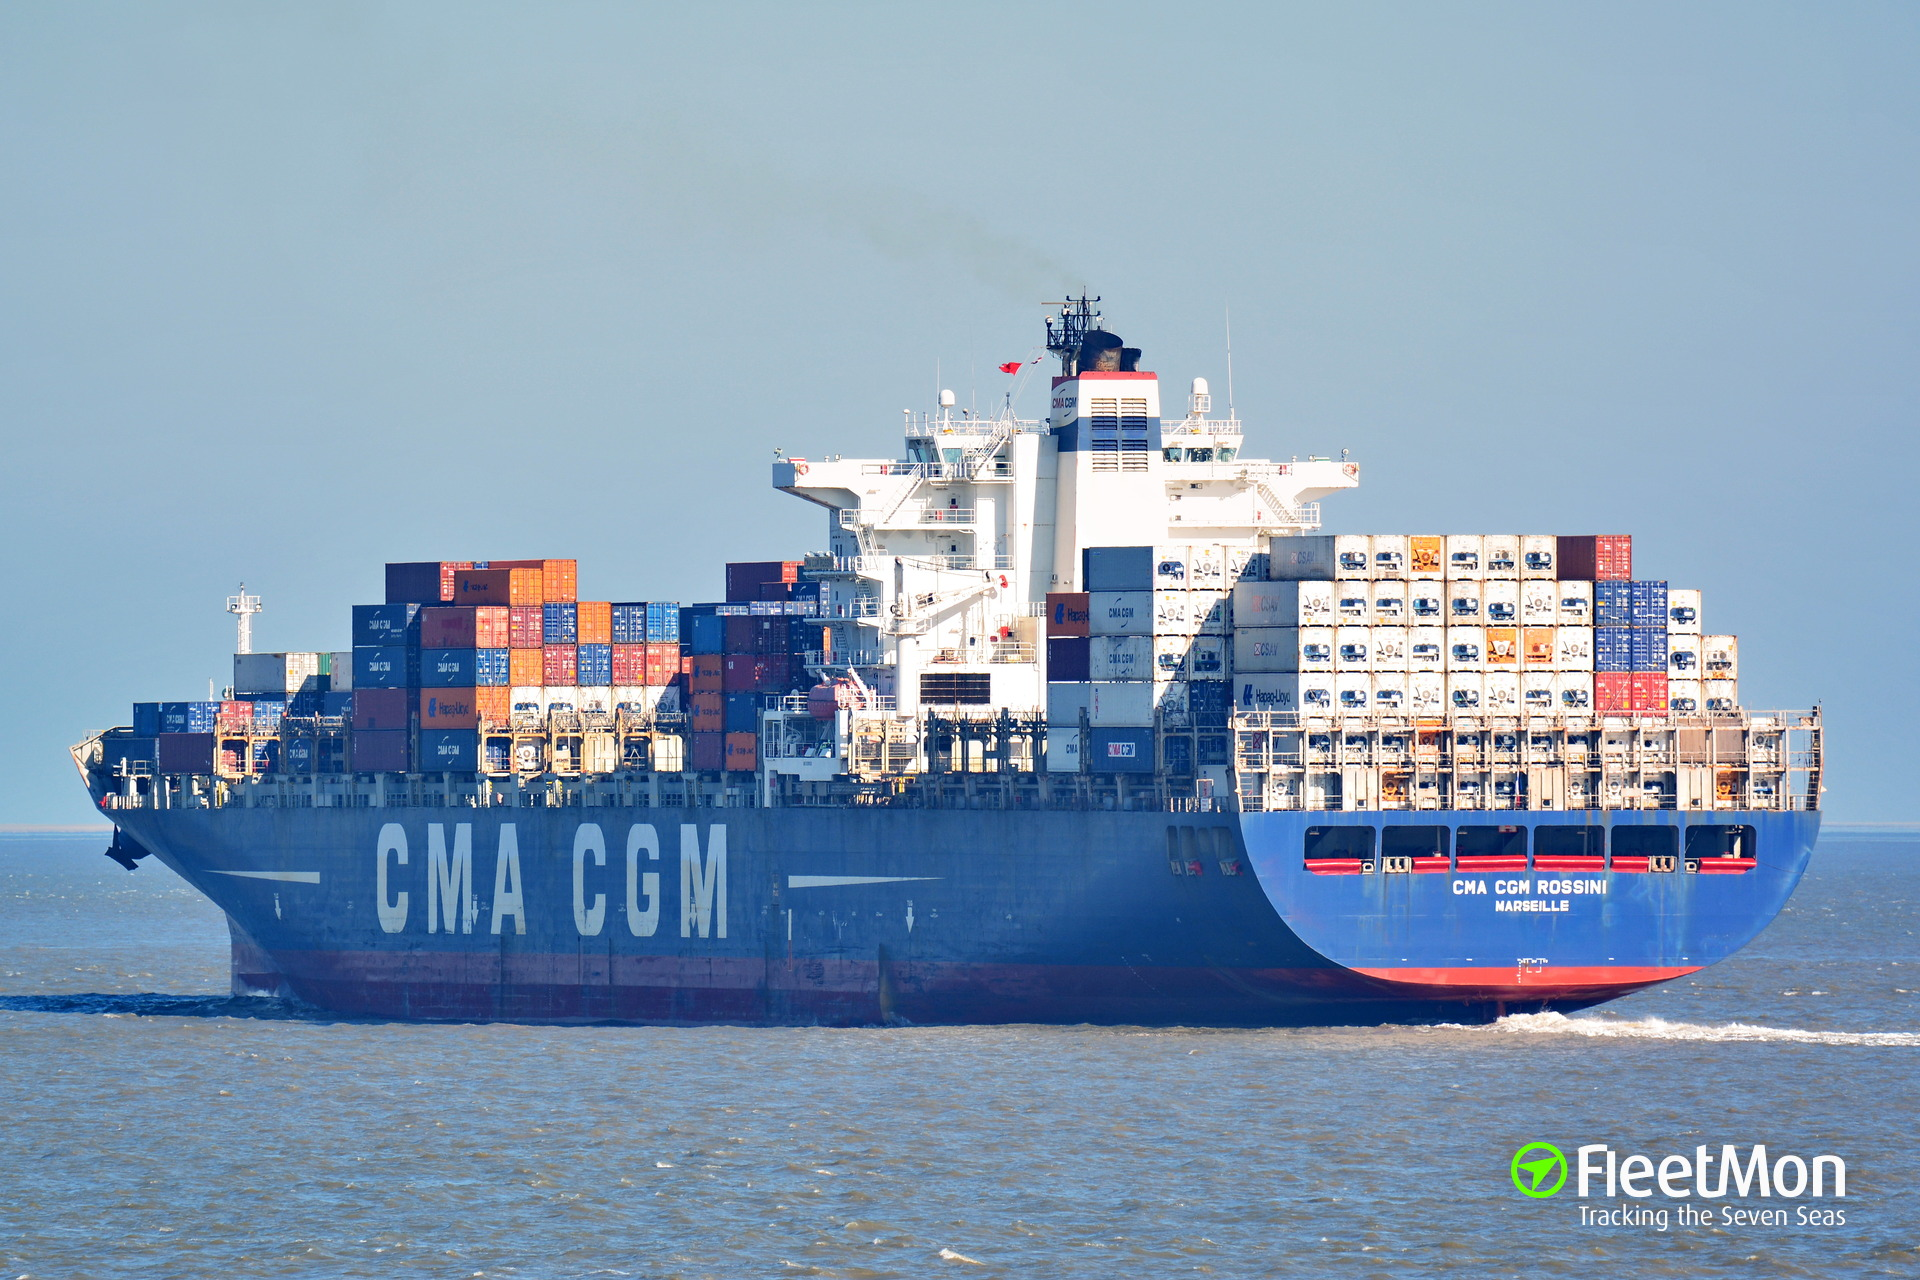 CMA CGM ROSSINI fire